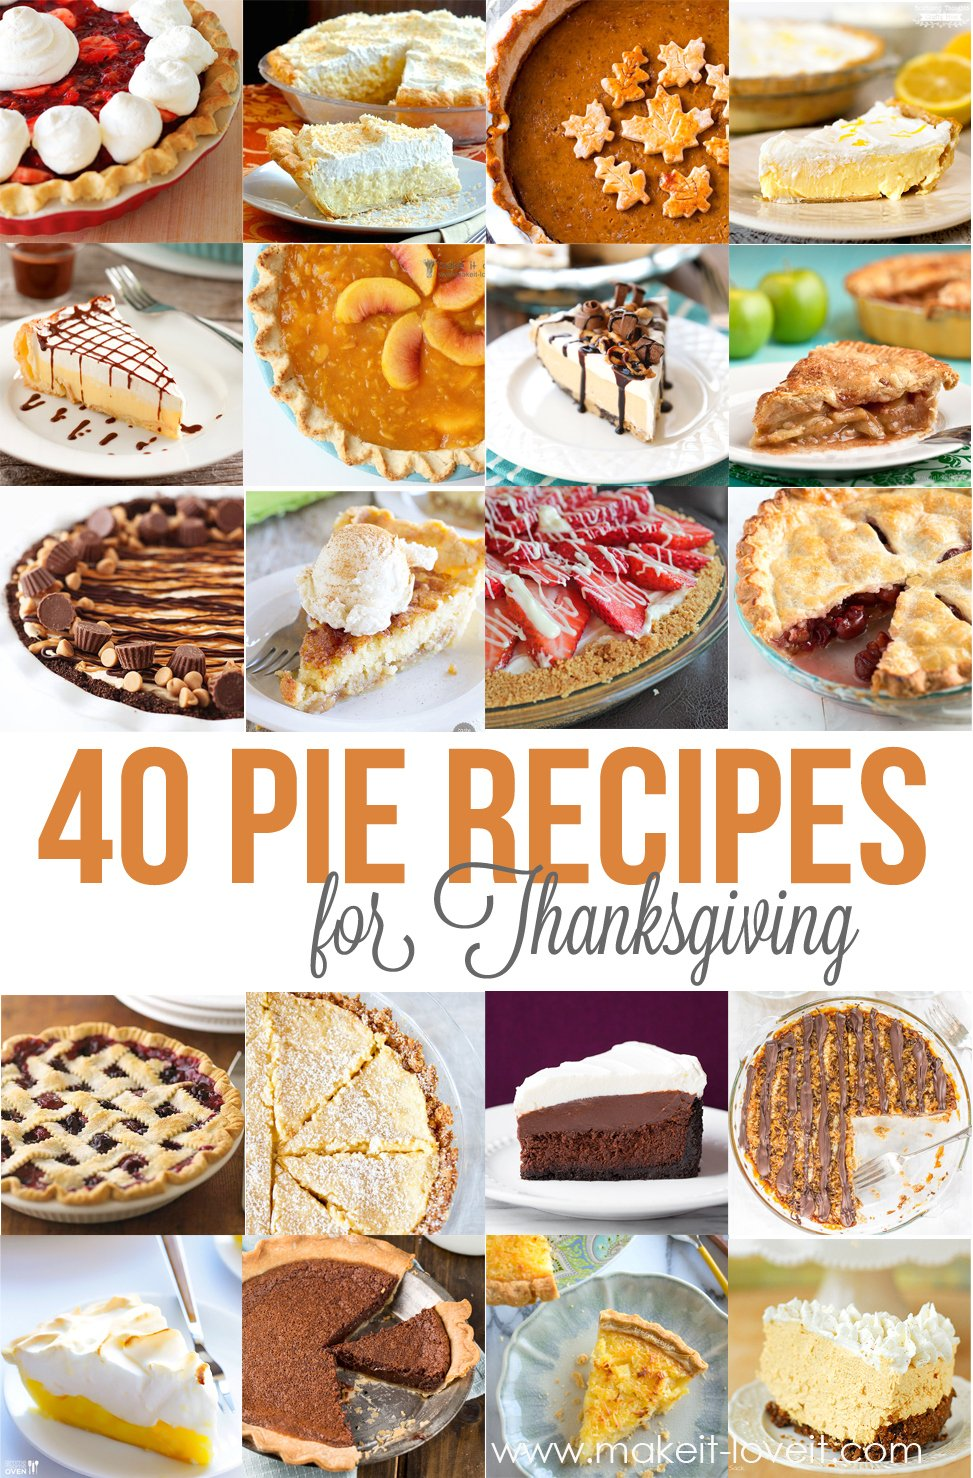 40 of the BEST Pie Recipes for Thanksgiving!